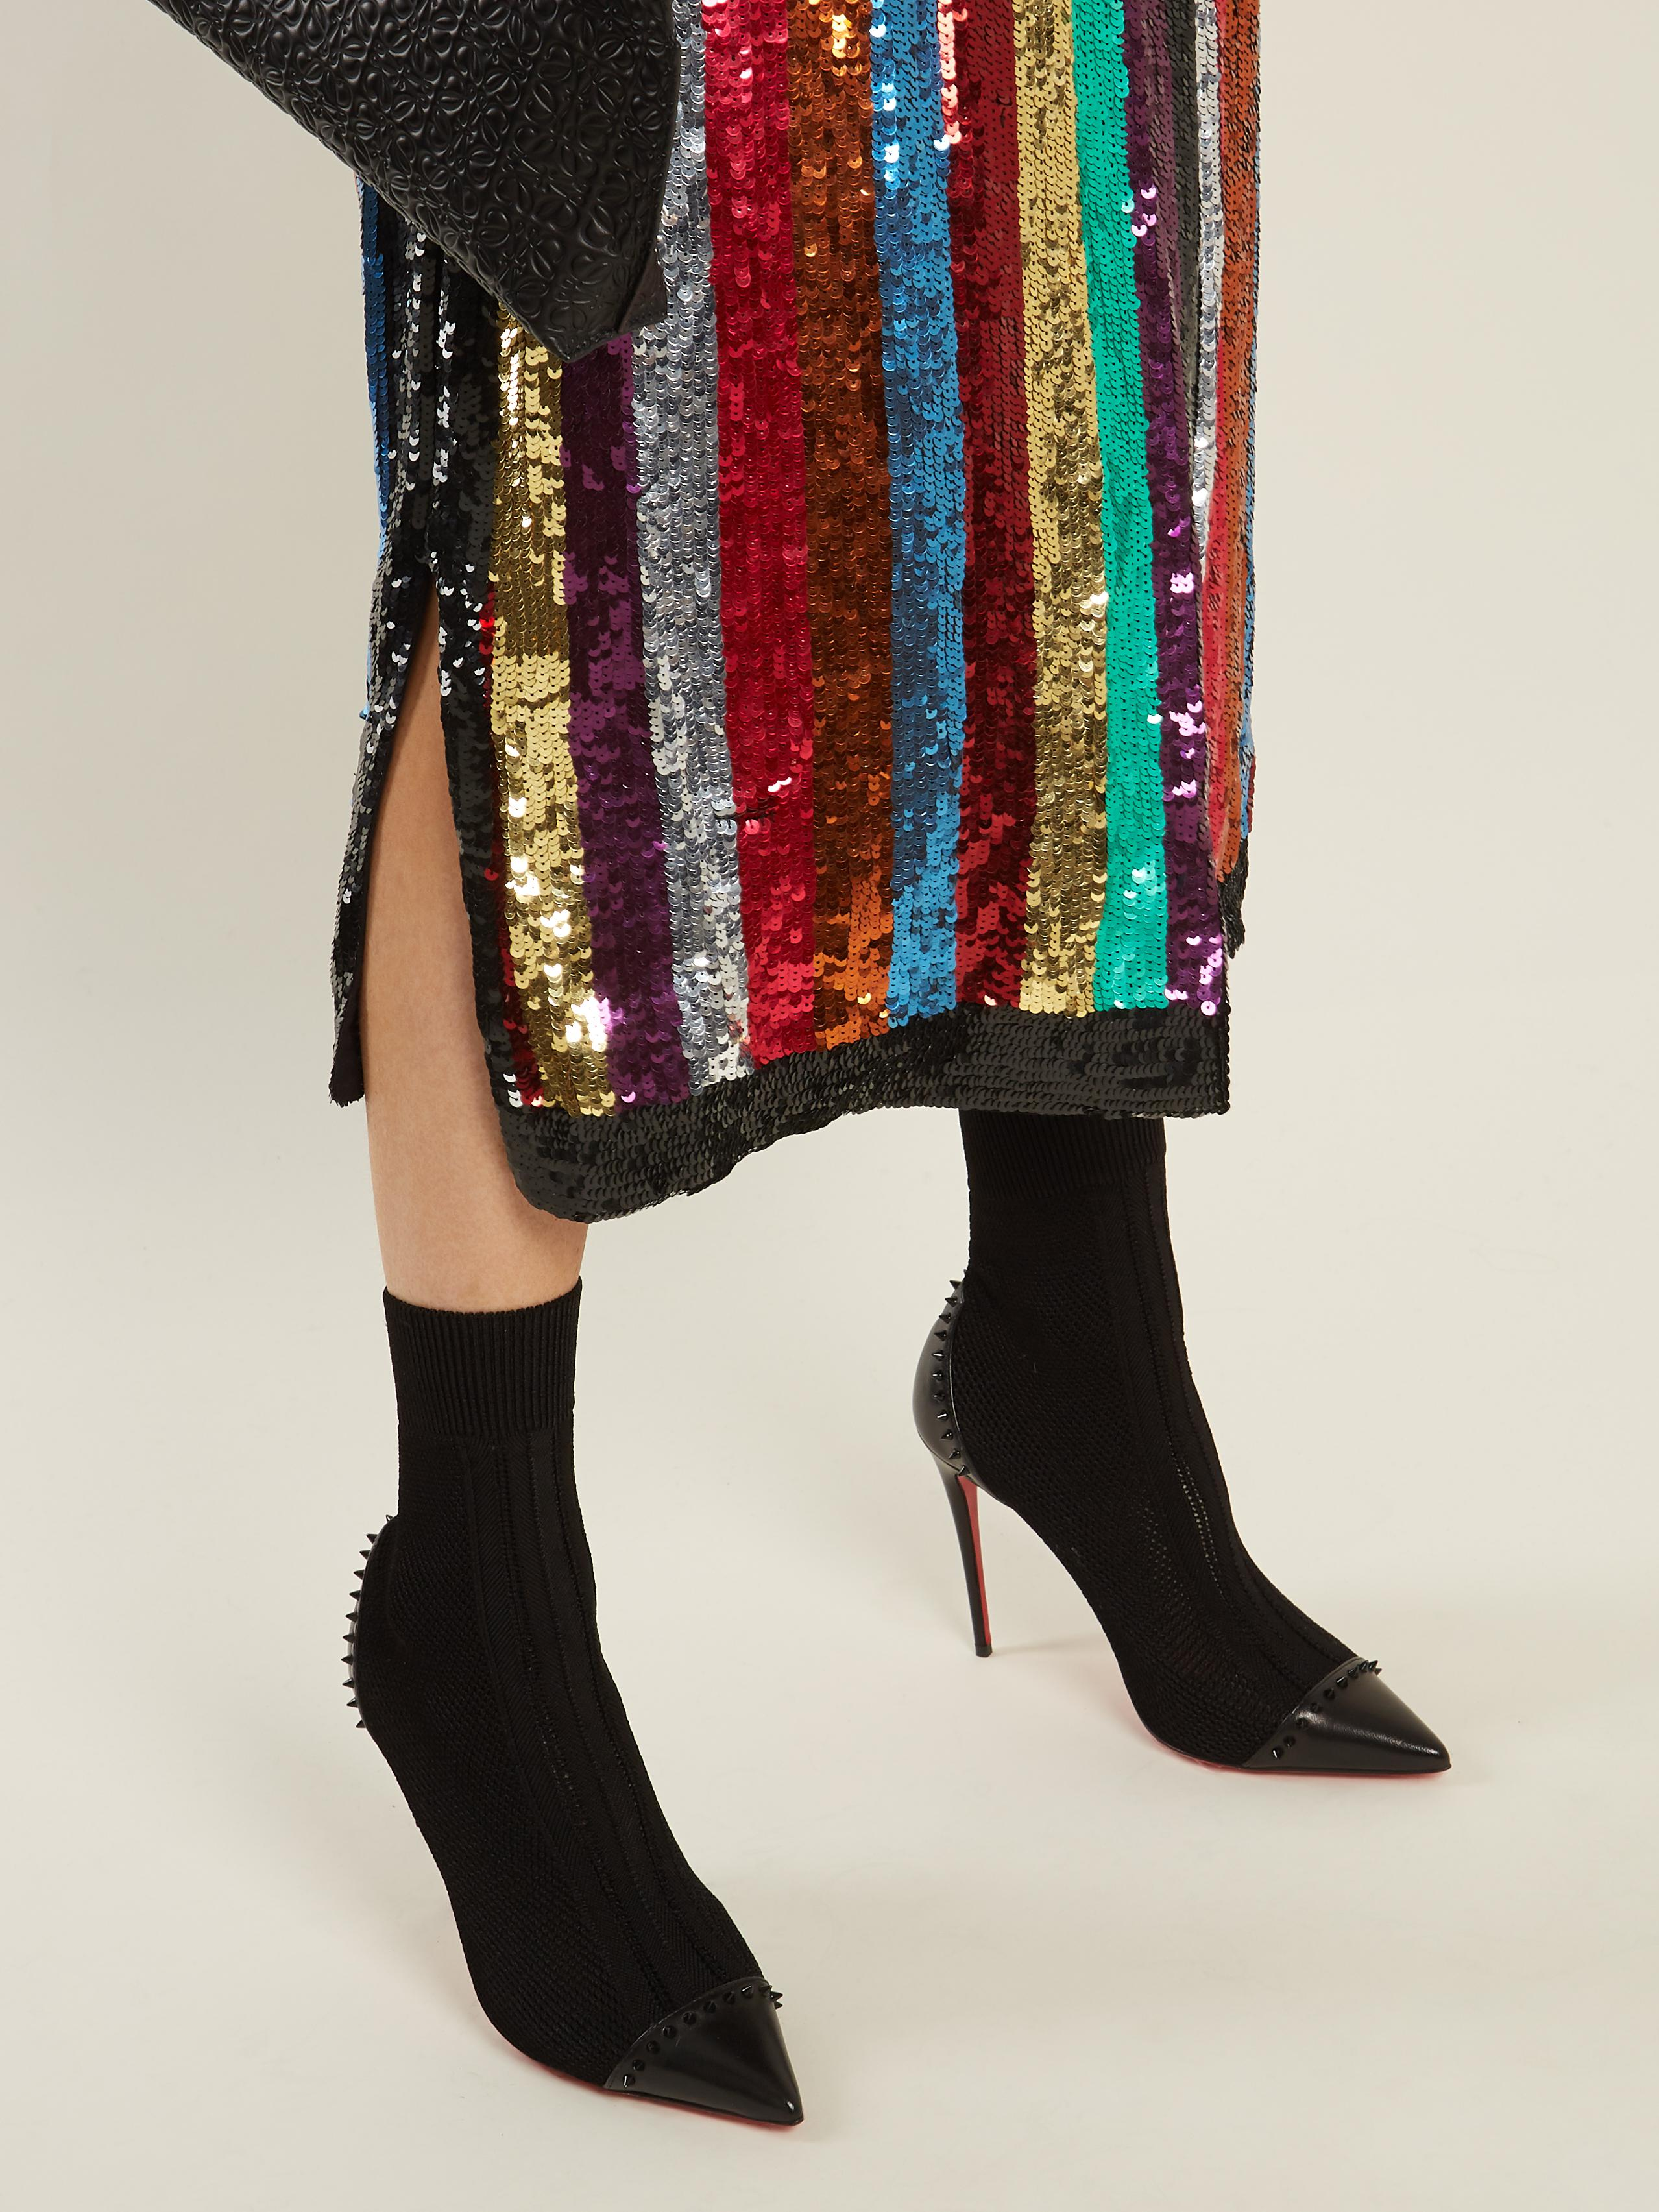 8dfaca5e700 Lyst - Christian Louboutin Dovi Dova Stud-embellished Sock Boots in ...